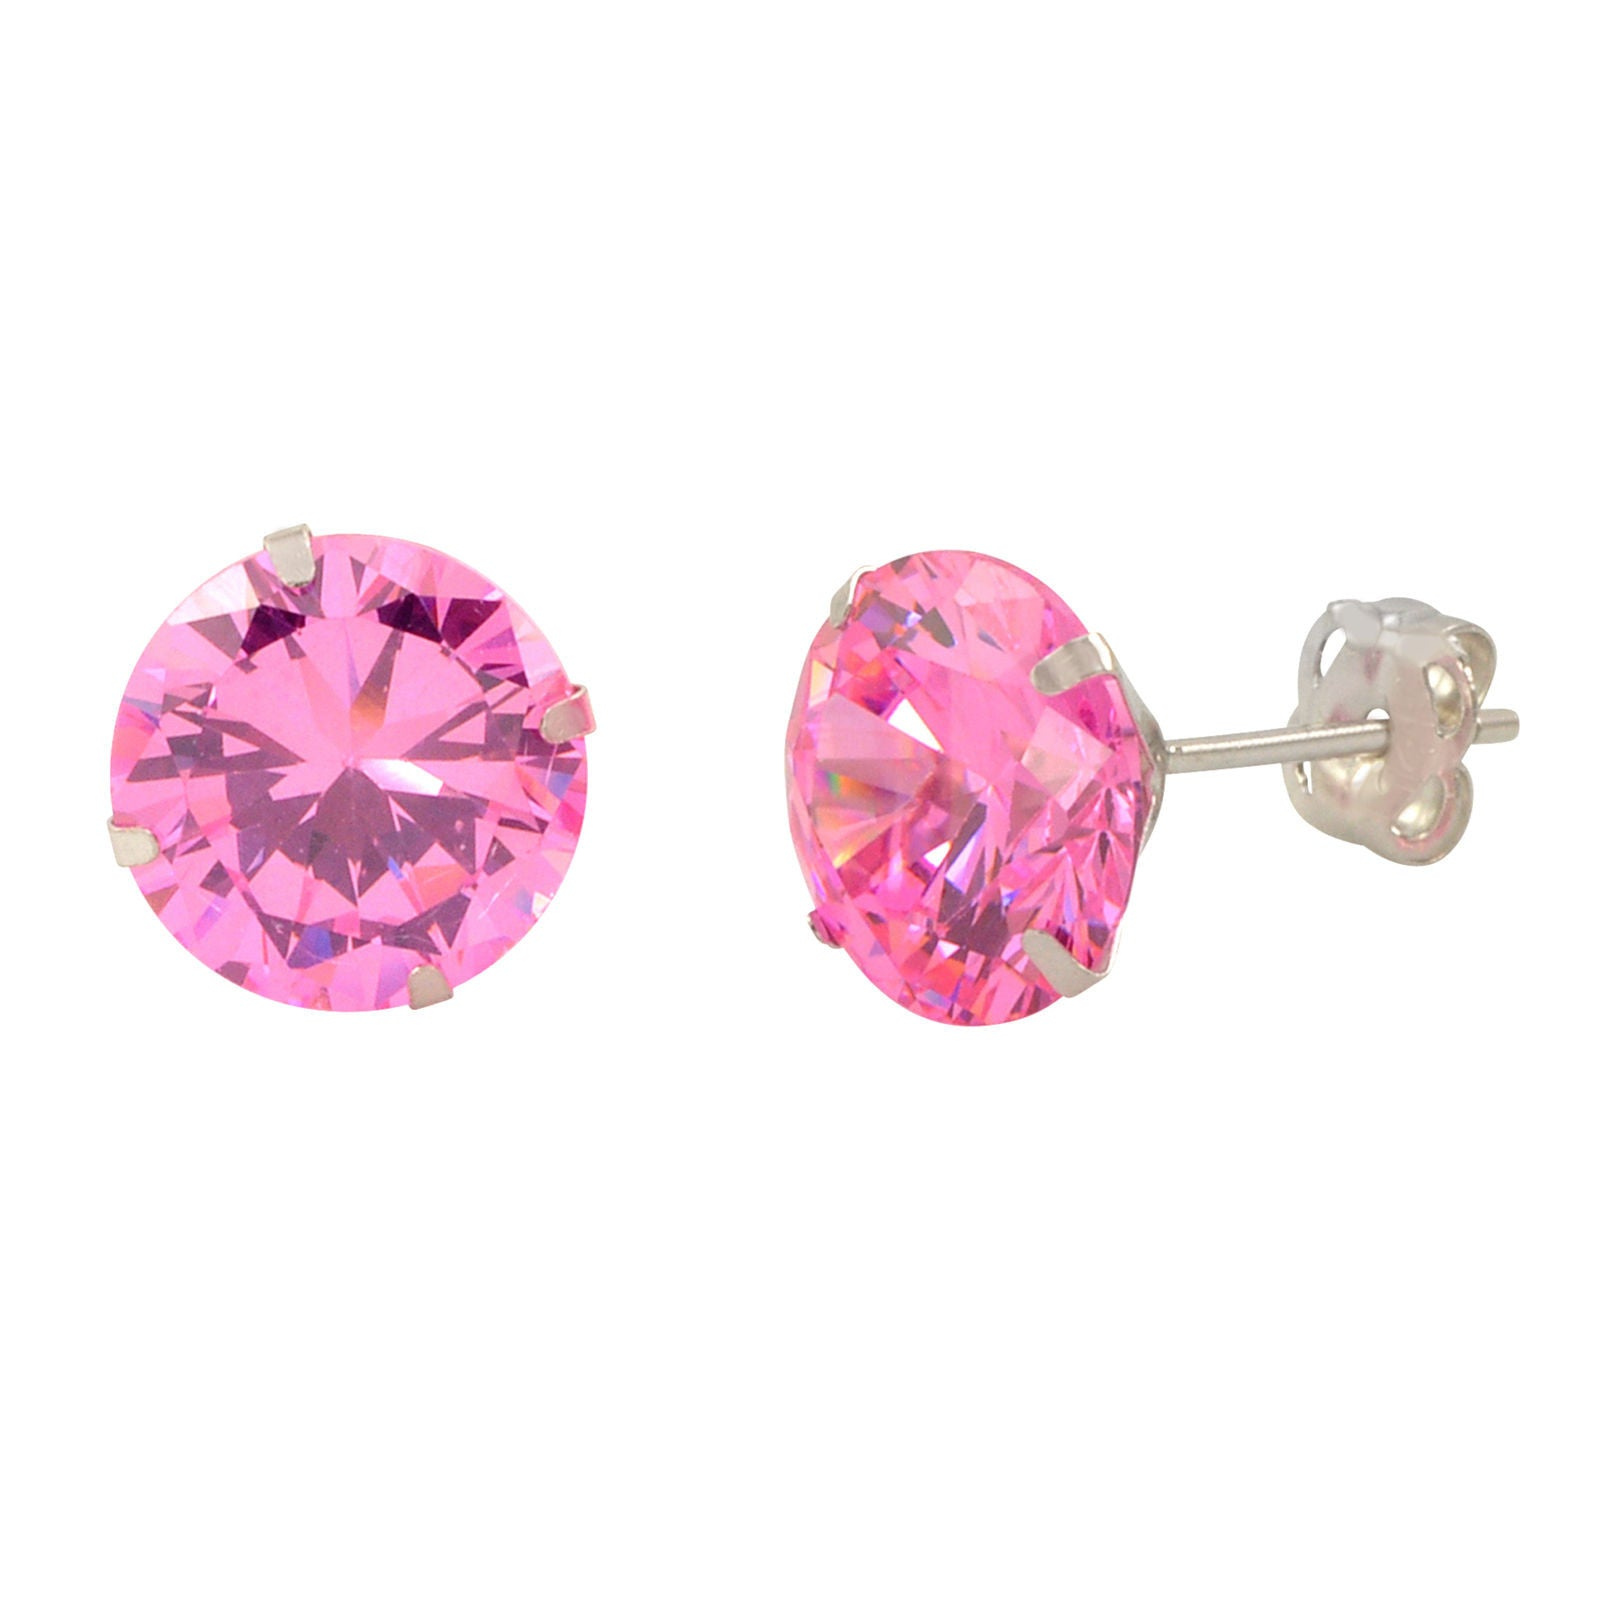 v cz jewelry bling pink topaz rose studs color heart zdc gold vermeil stud earrings